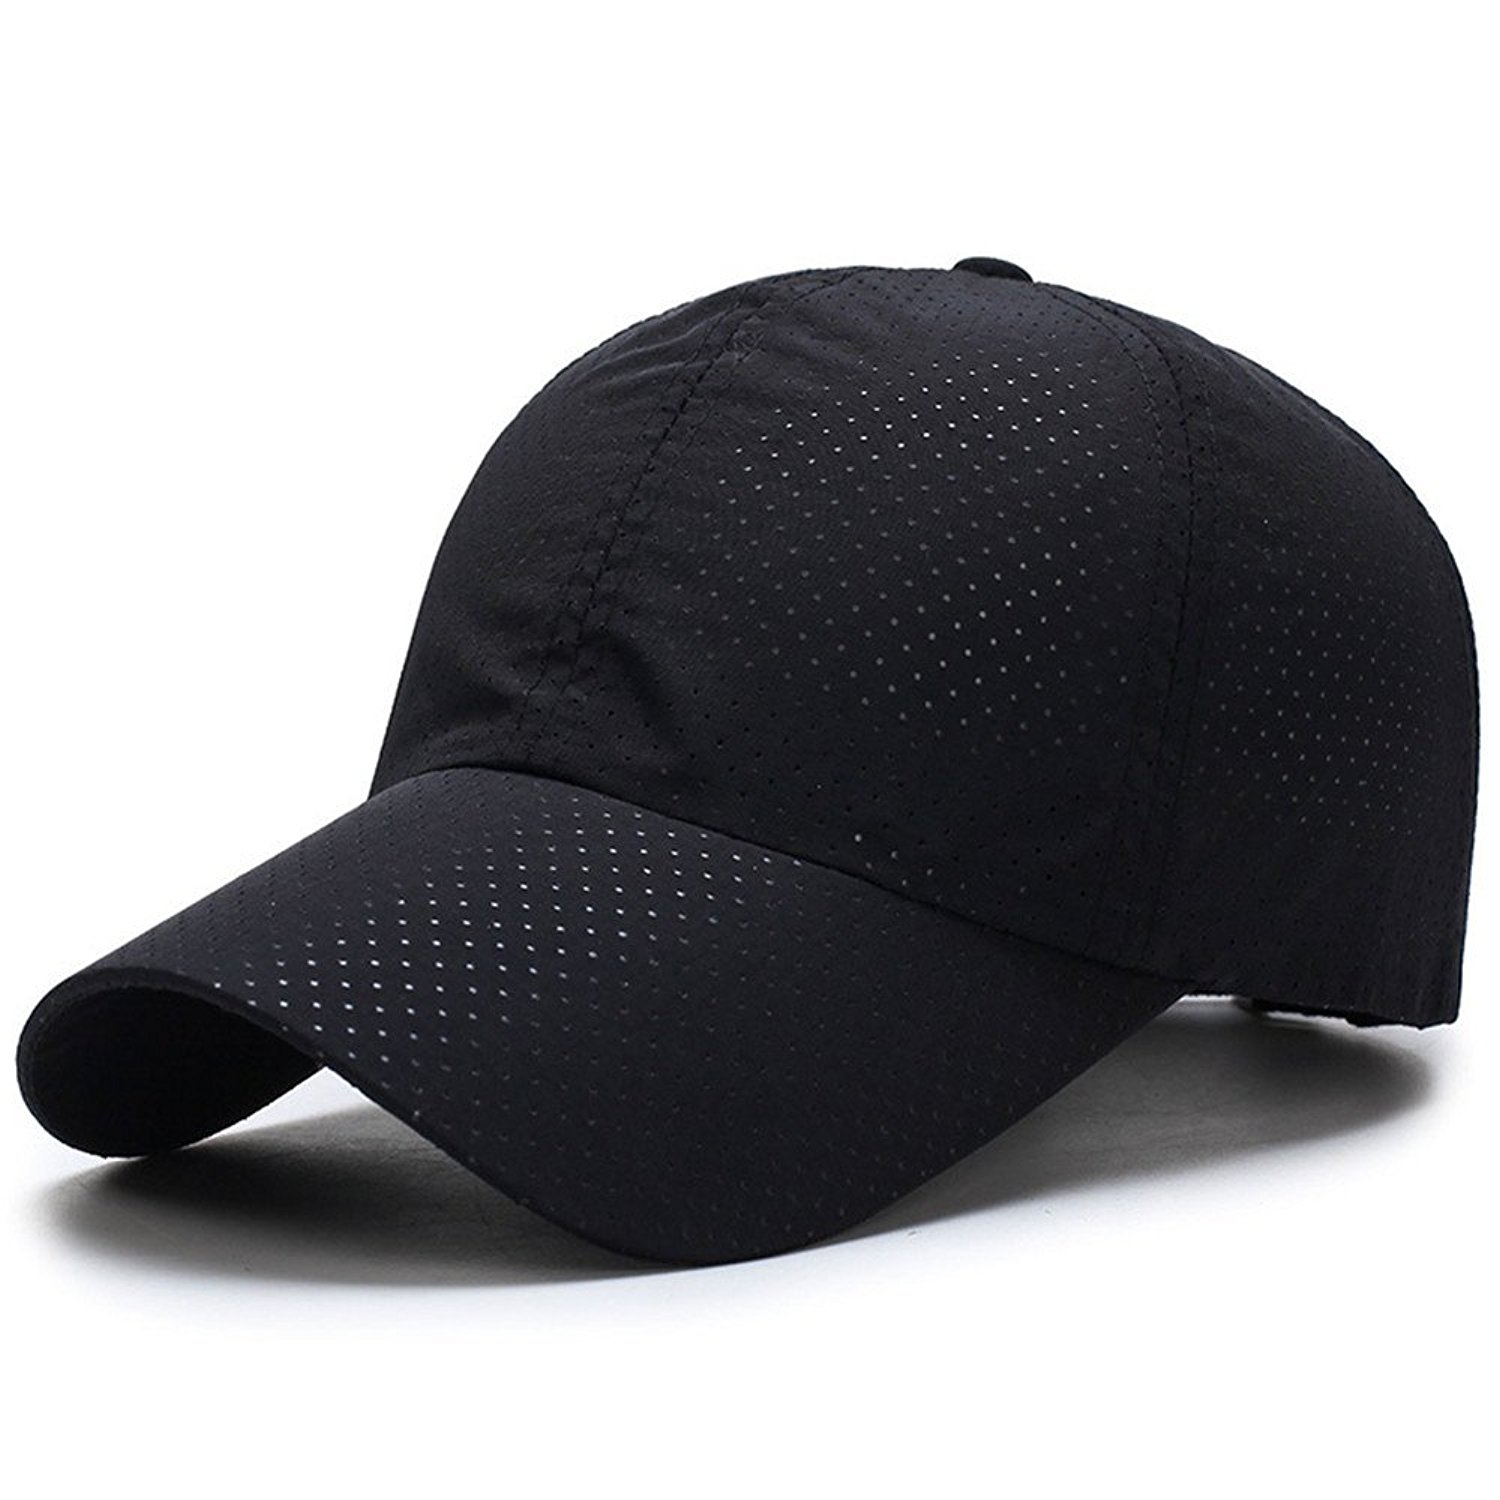 64582bb46a1 Get Quotations · FUNY Summer Baseball Cap Quick Dry Cooling Sun Hats Sports  Caps Mesh Hat for Golf Cycling